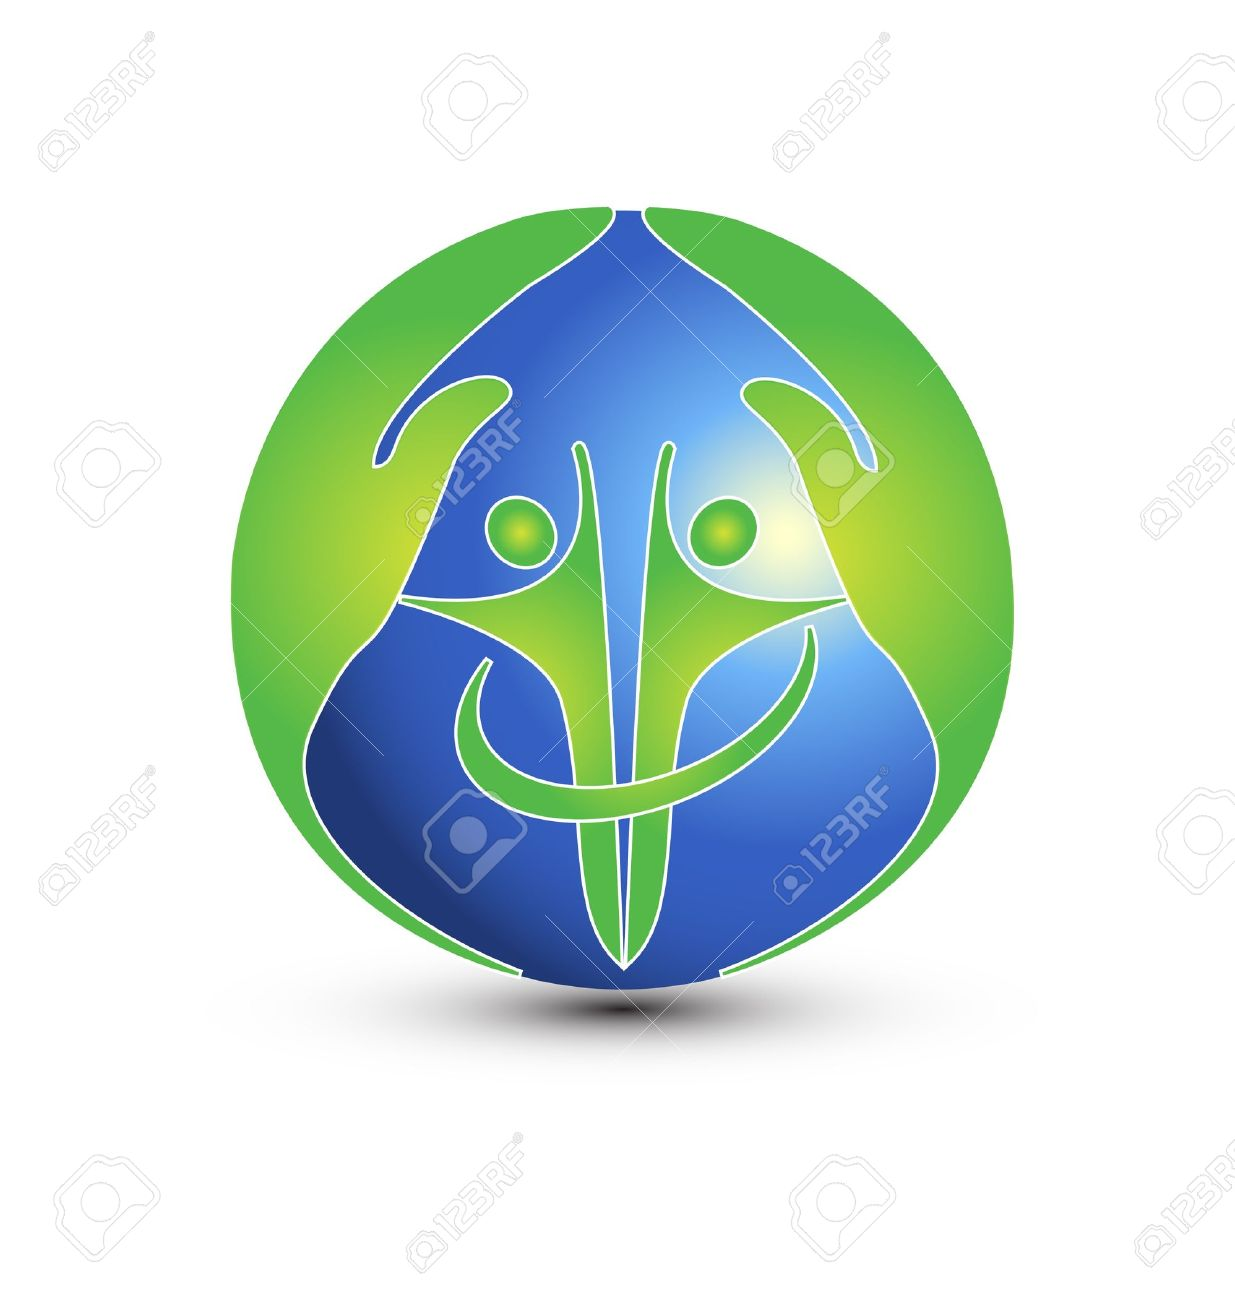 Hands and people protect the world logo vector Standard-Bild - 16938099